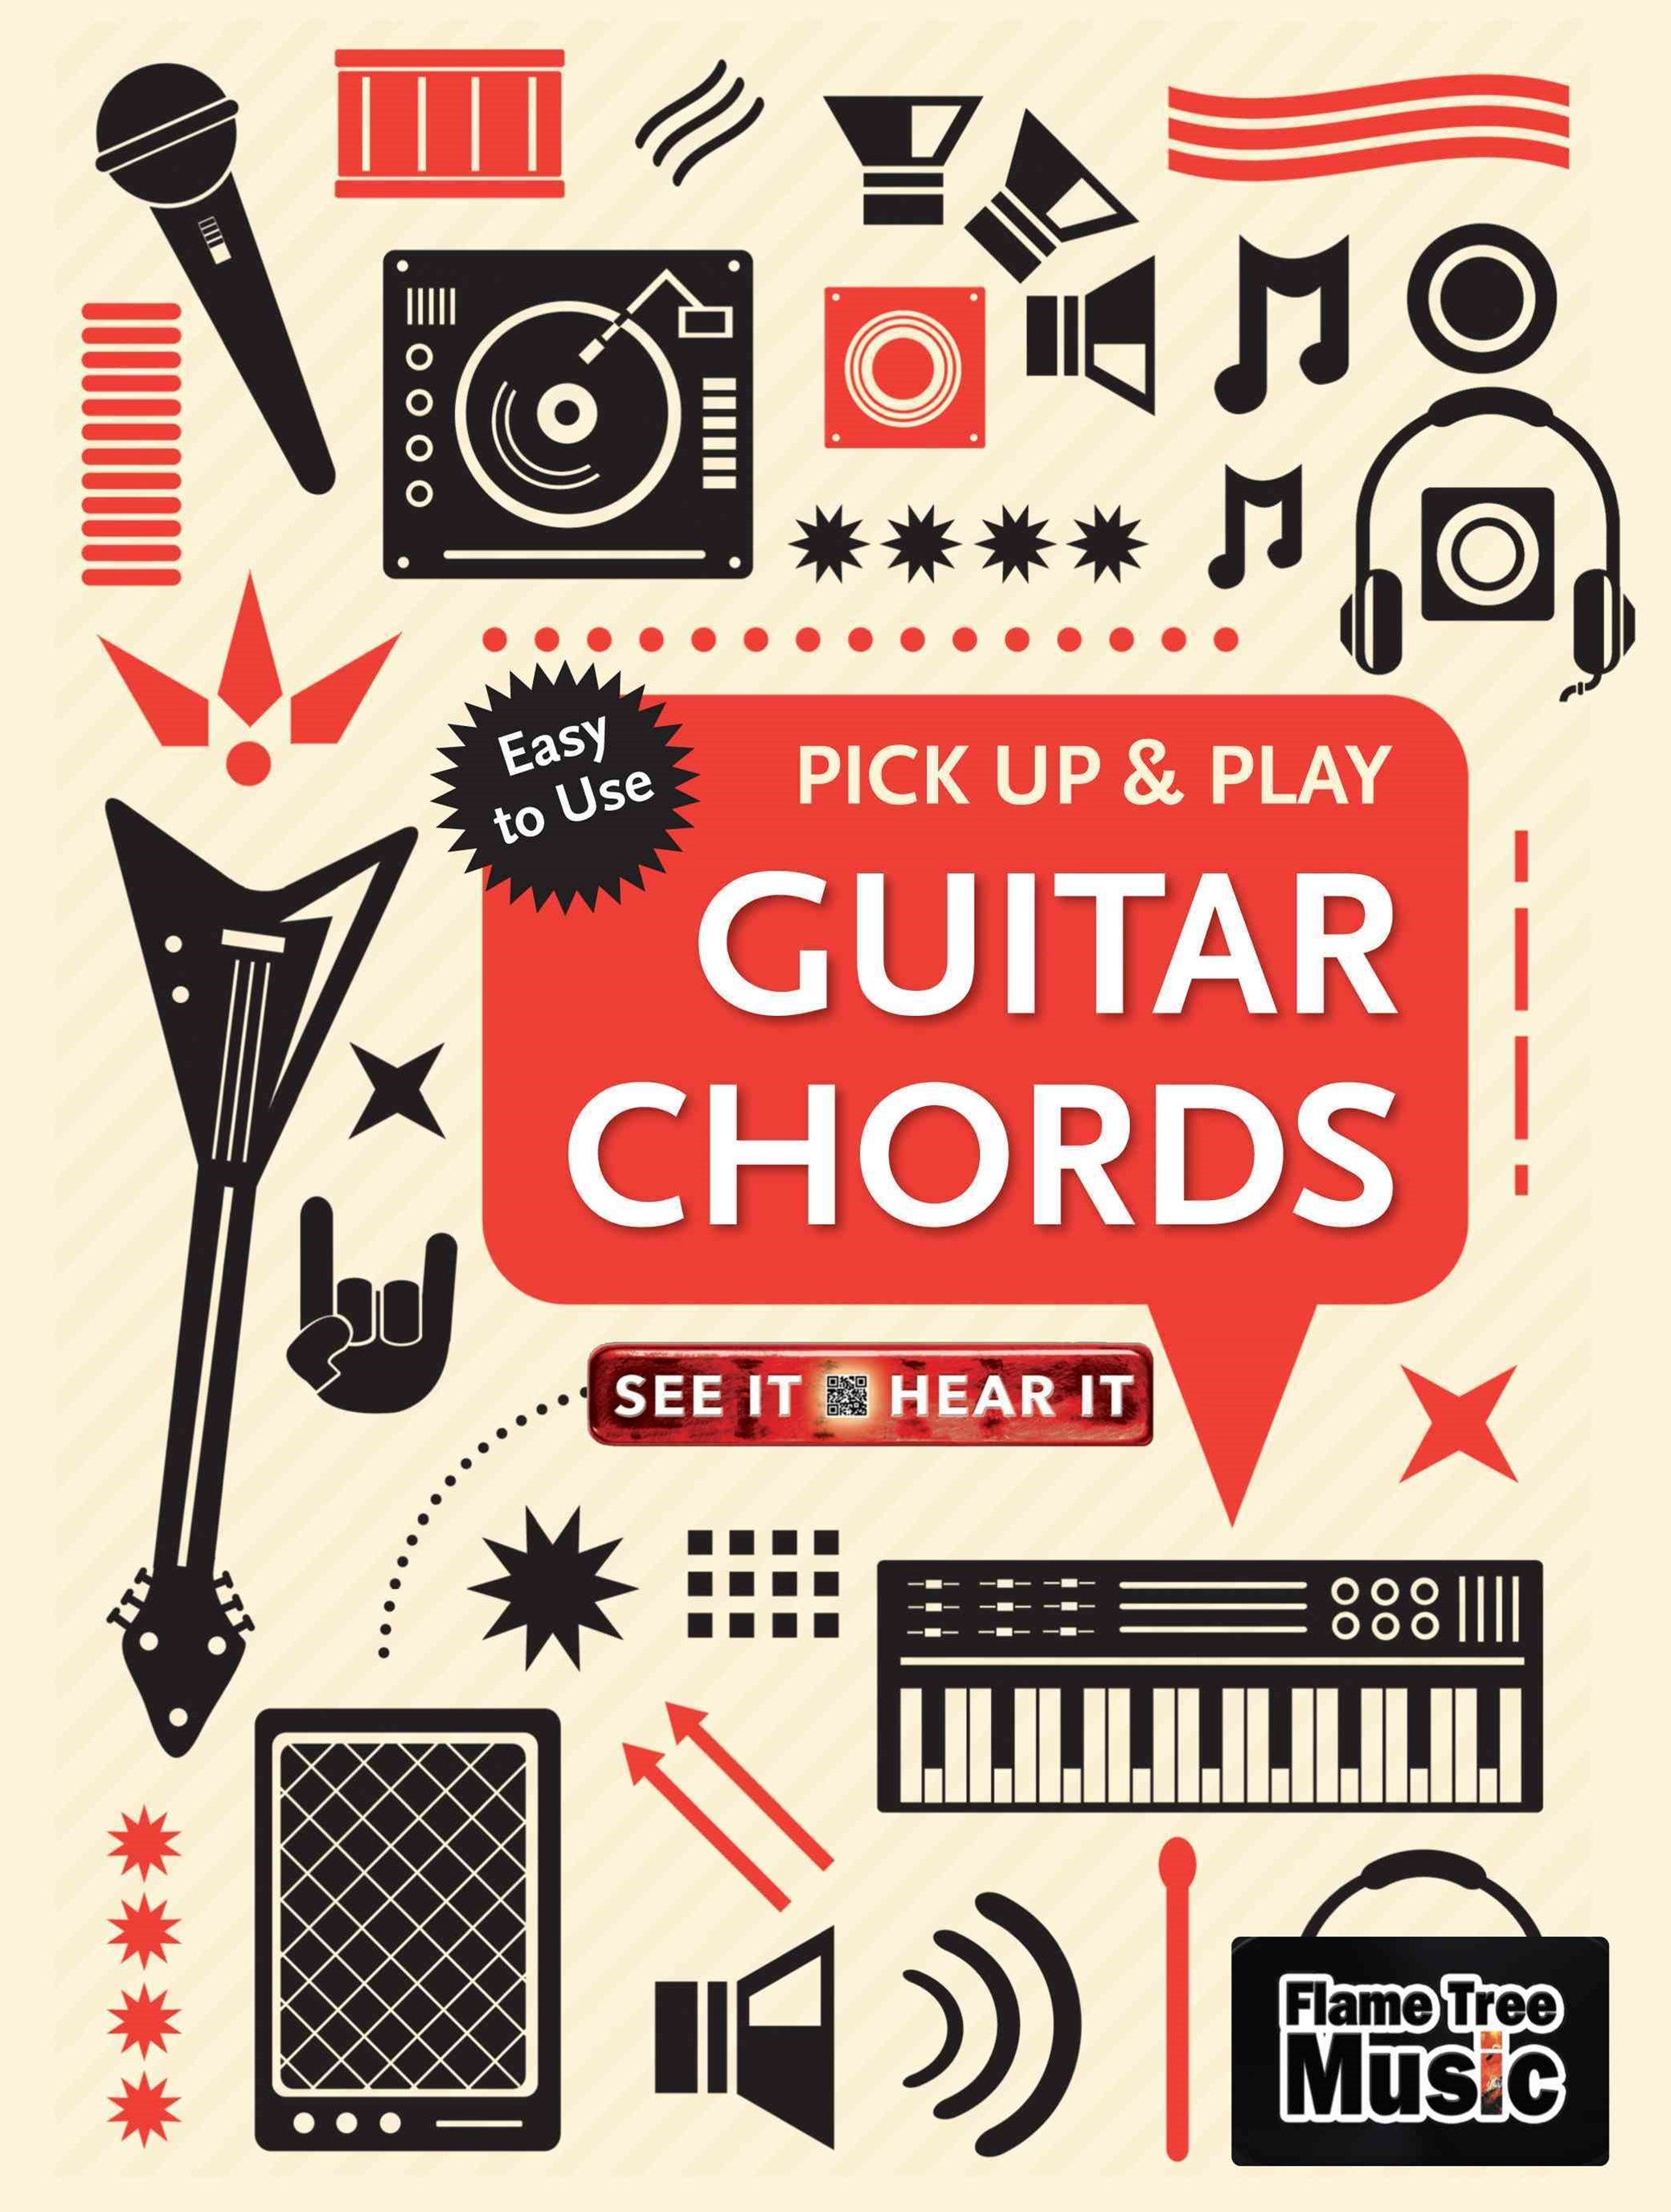 Pick Up and Play Guitar Chords